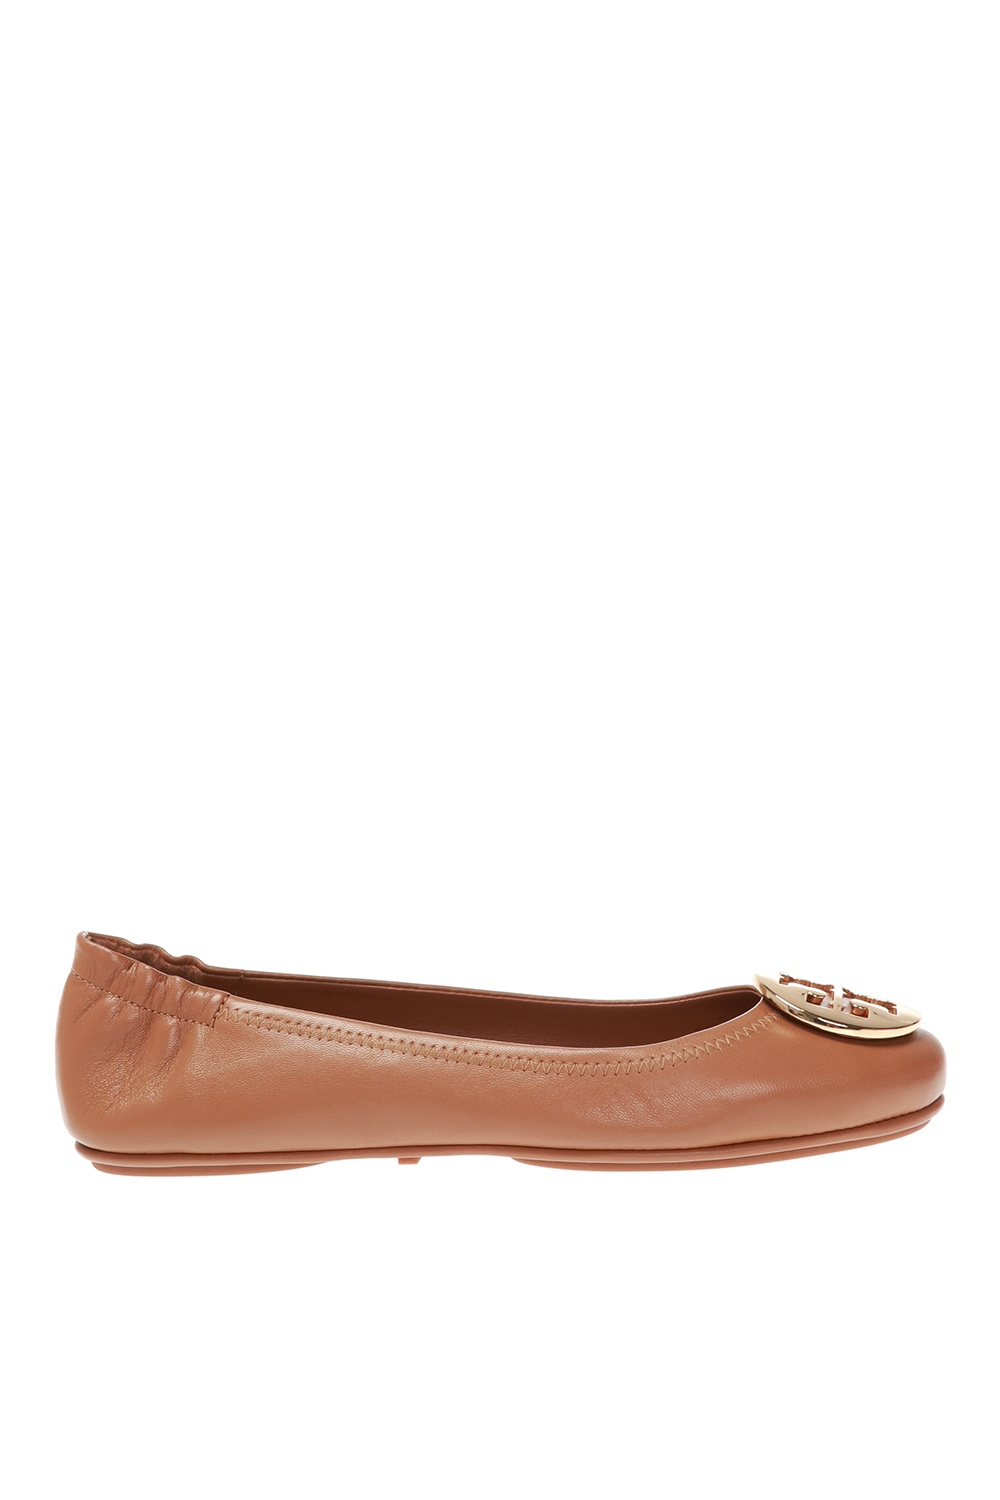 Tory Burch Leather ballet flats with logo